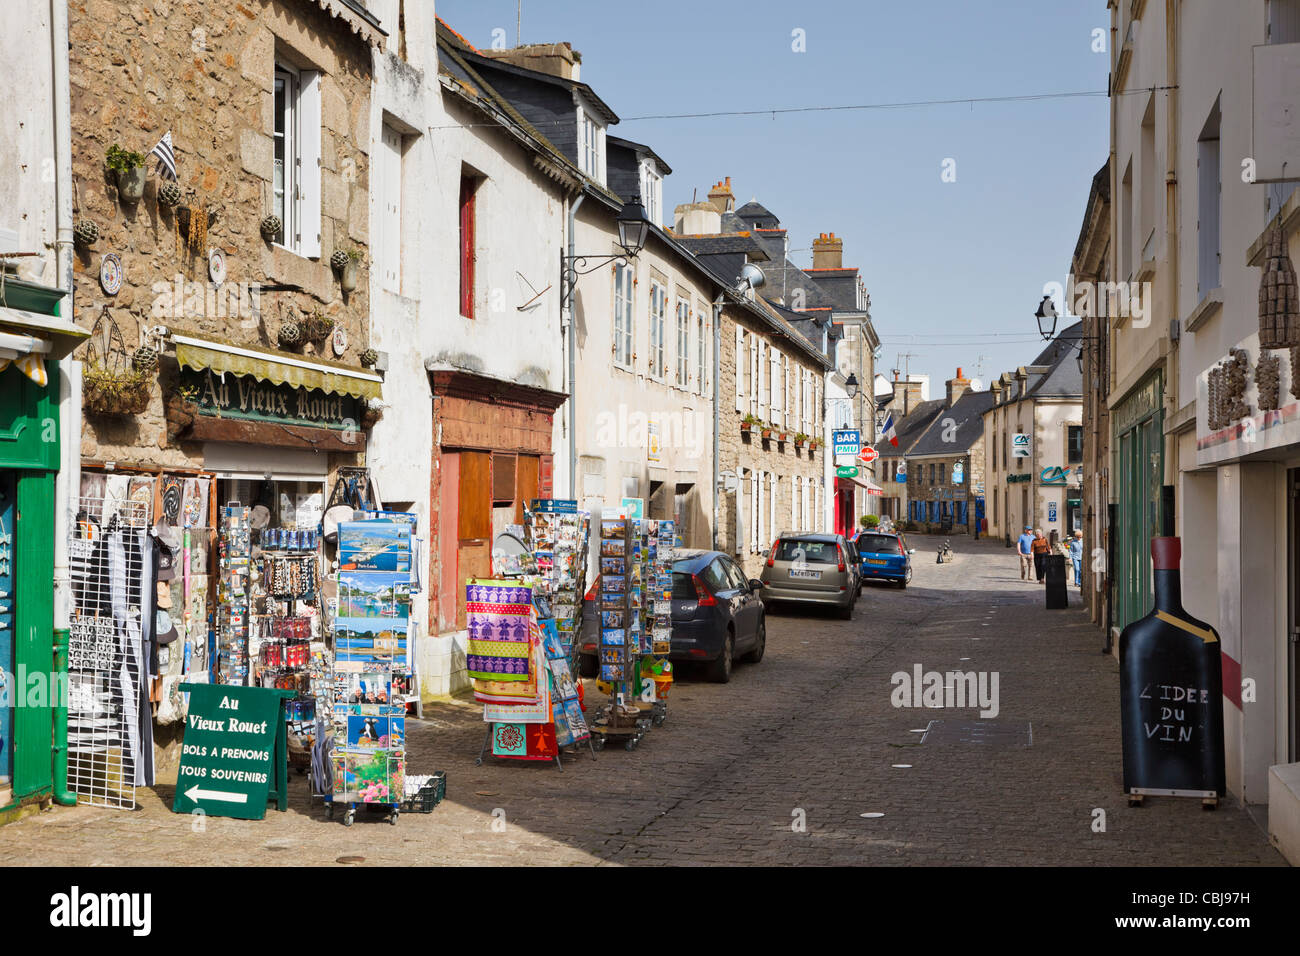 Street in Port Louis, Morbihan, Brittany, France Stock Photo